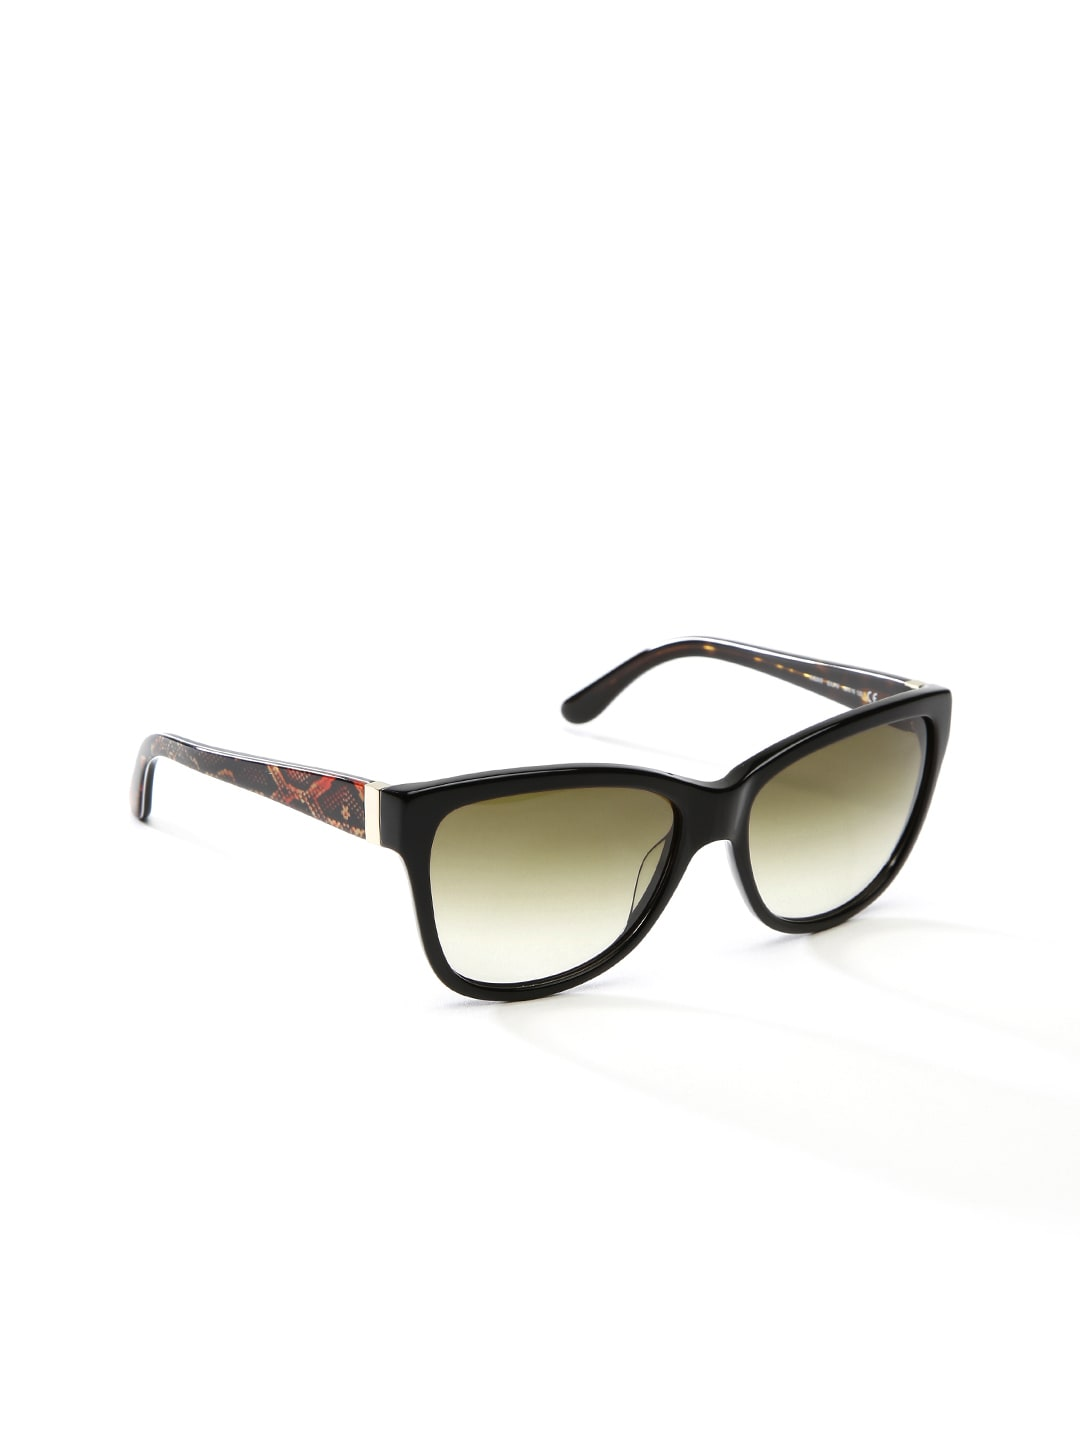 59c97305ad Buy Fendi Women Clubmaster Sunglasses 0051 S 2JVHD - Sunglasses for ...